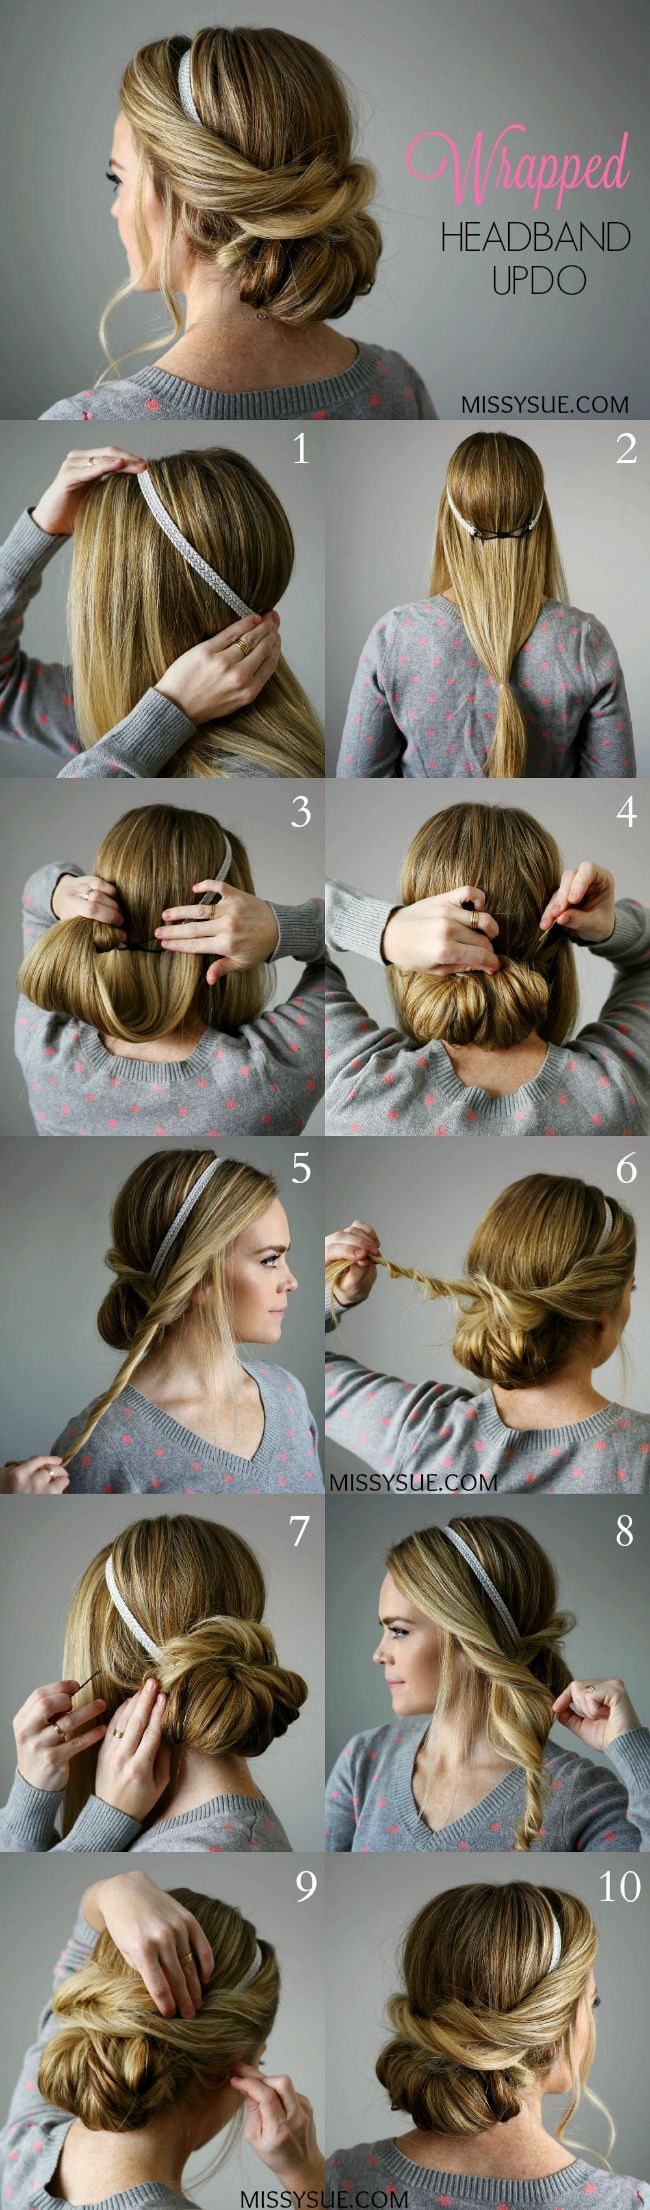 14 Simply Gorgeous Hair Tutorials for Weddings, Prom, & Fancy Affairs | How…